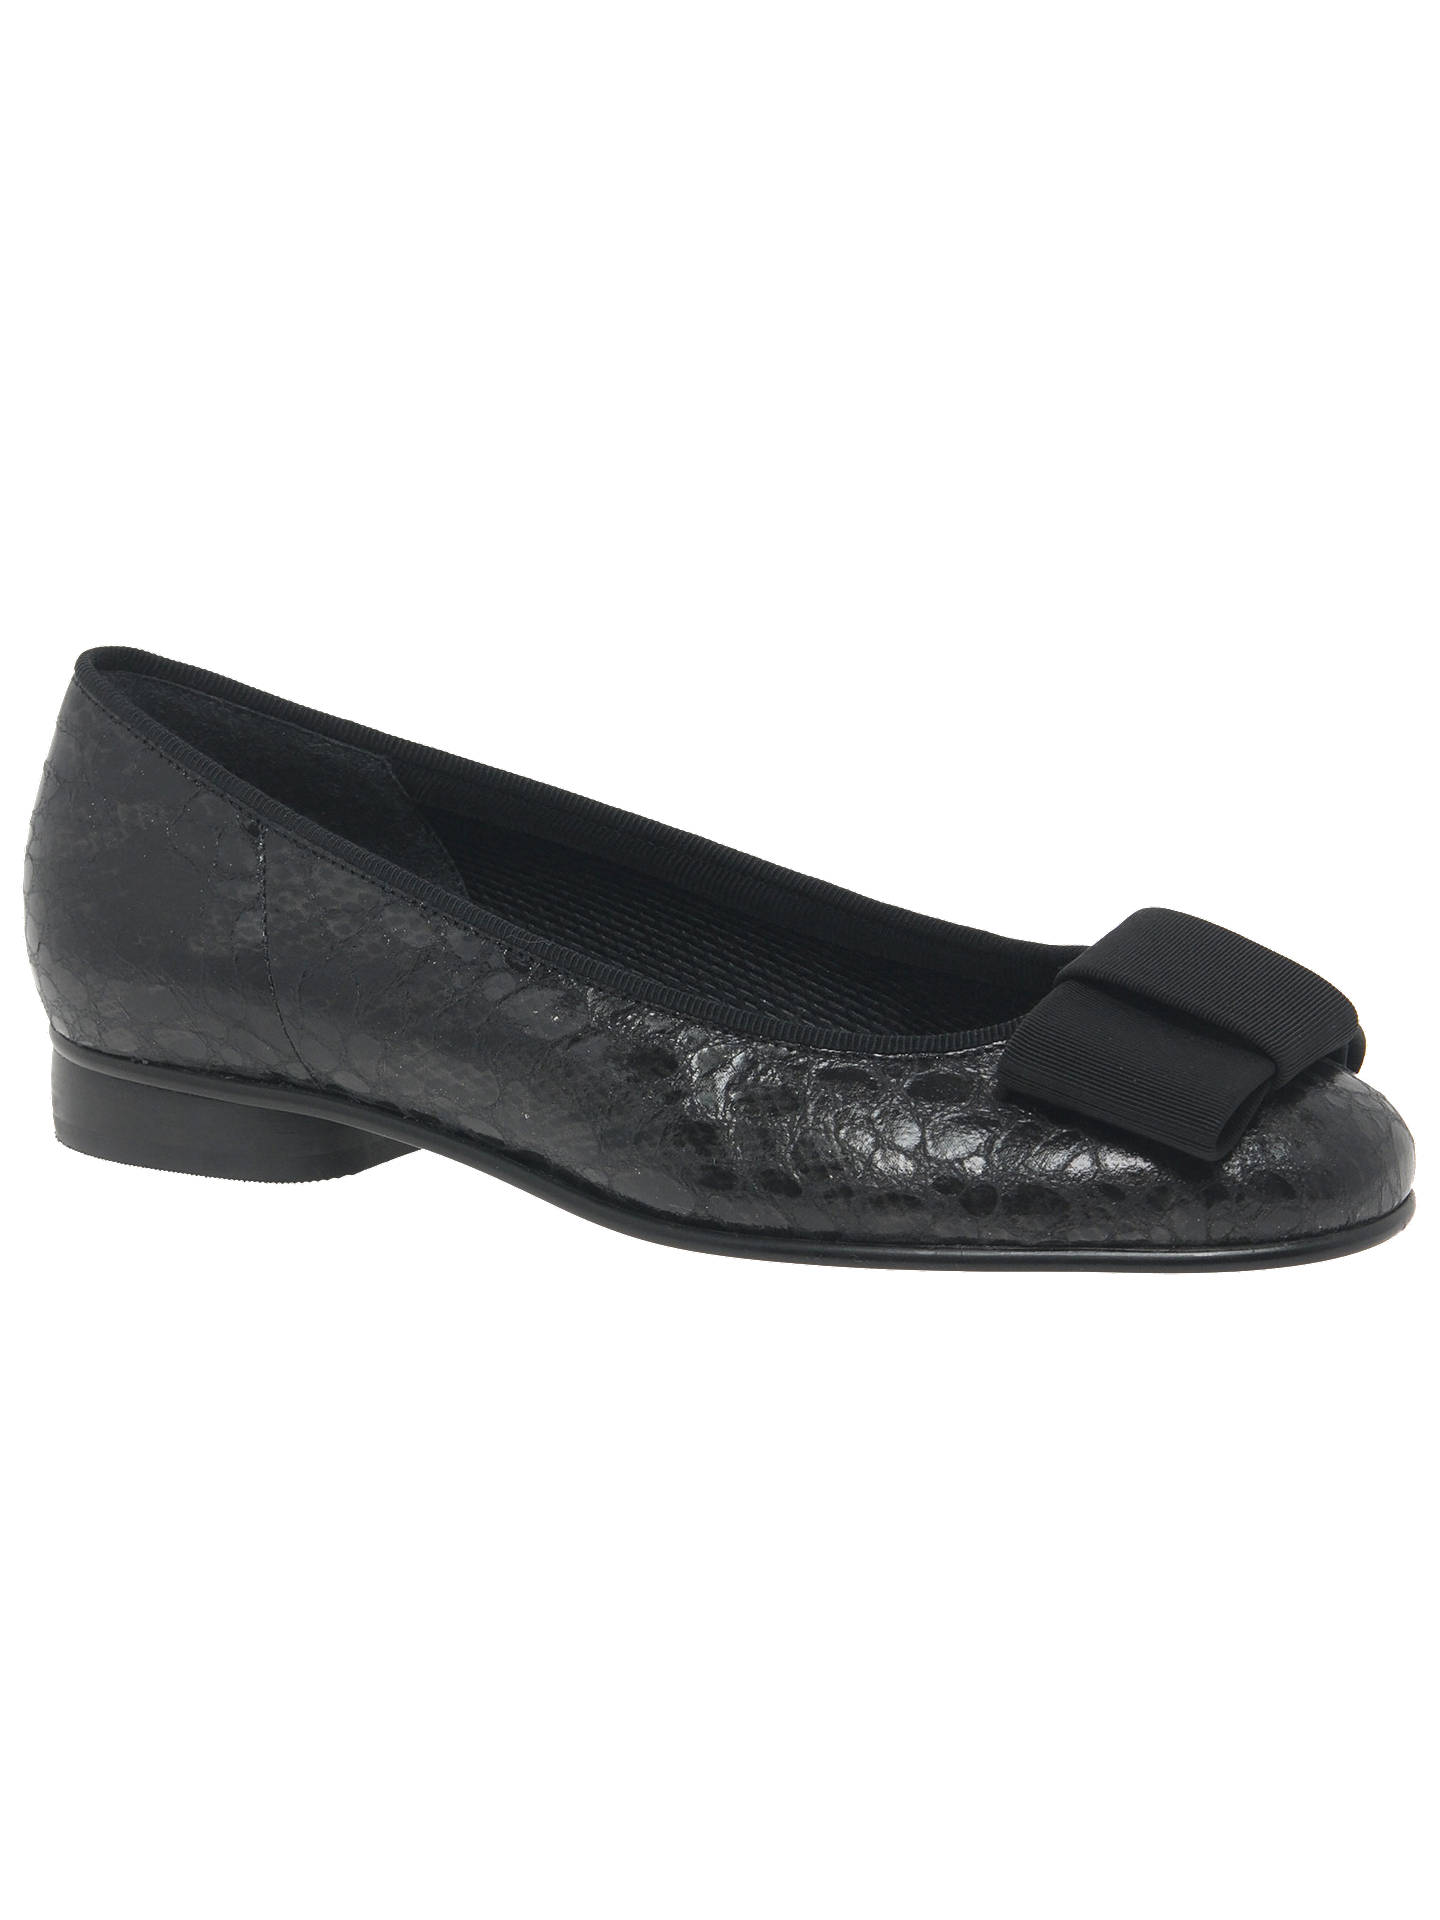 5c0823a2e Buy Gabor Assist Bow Ballet Pumps